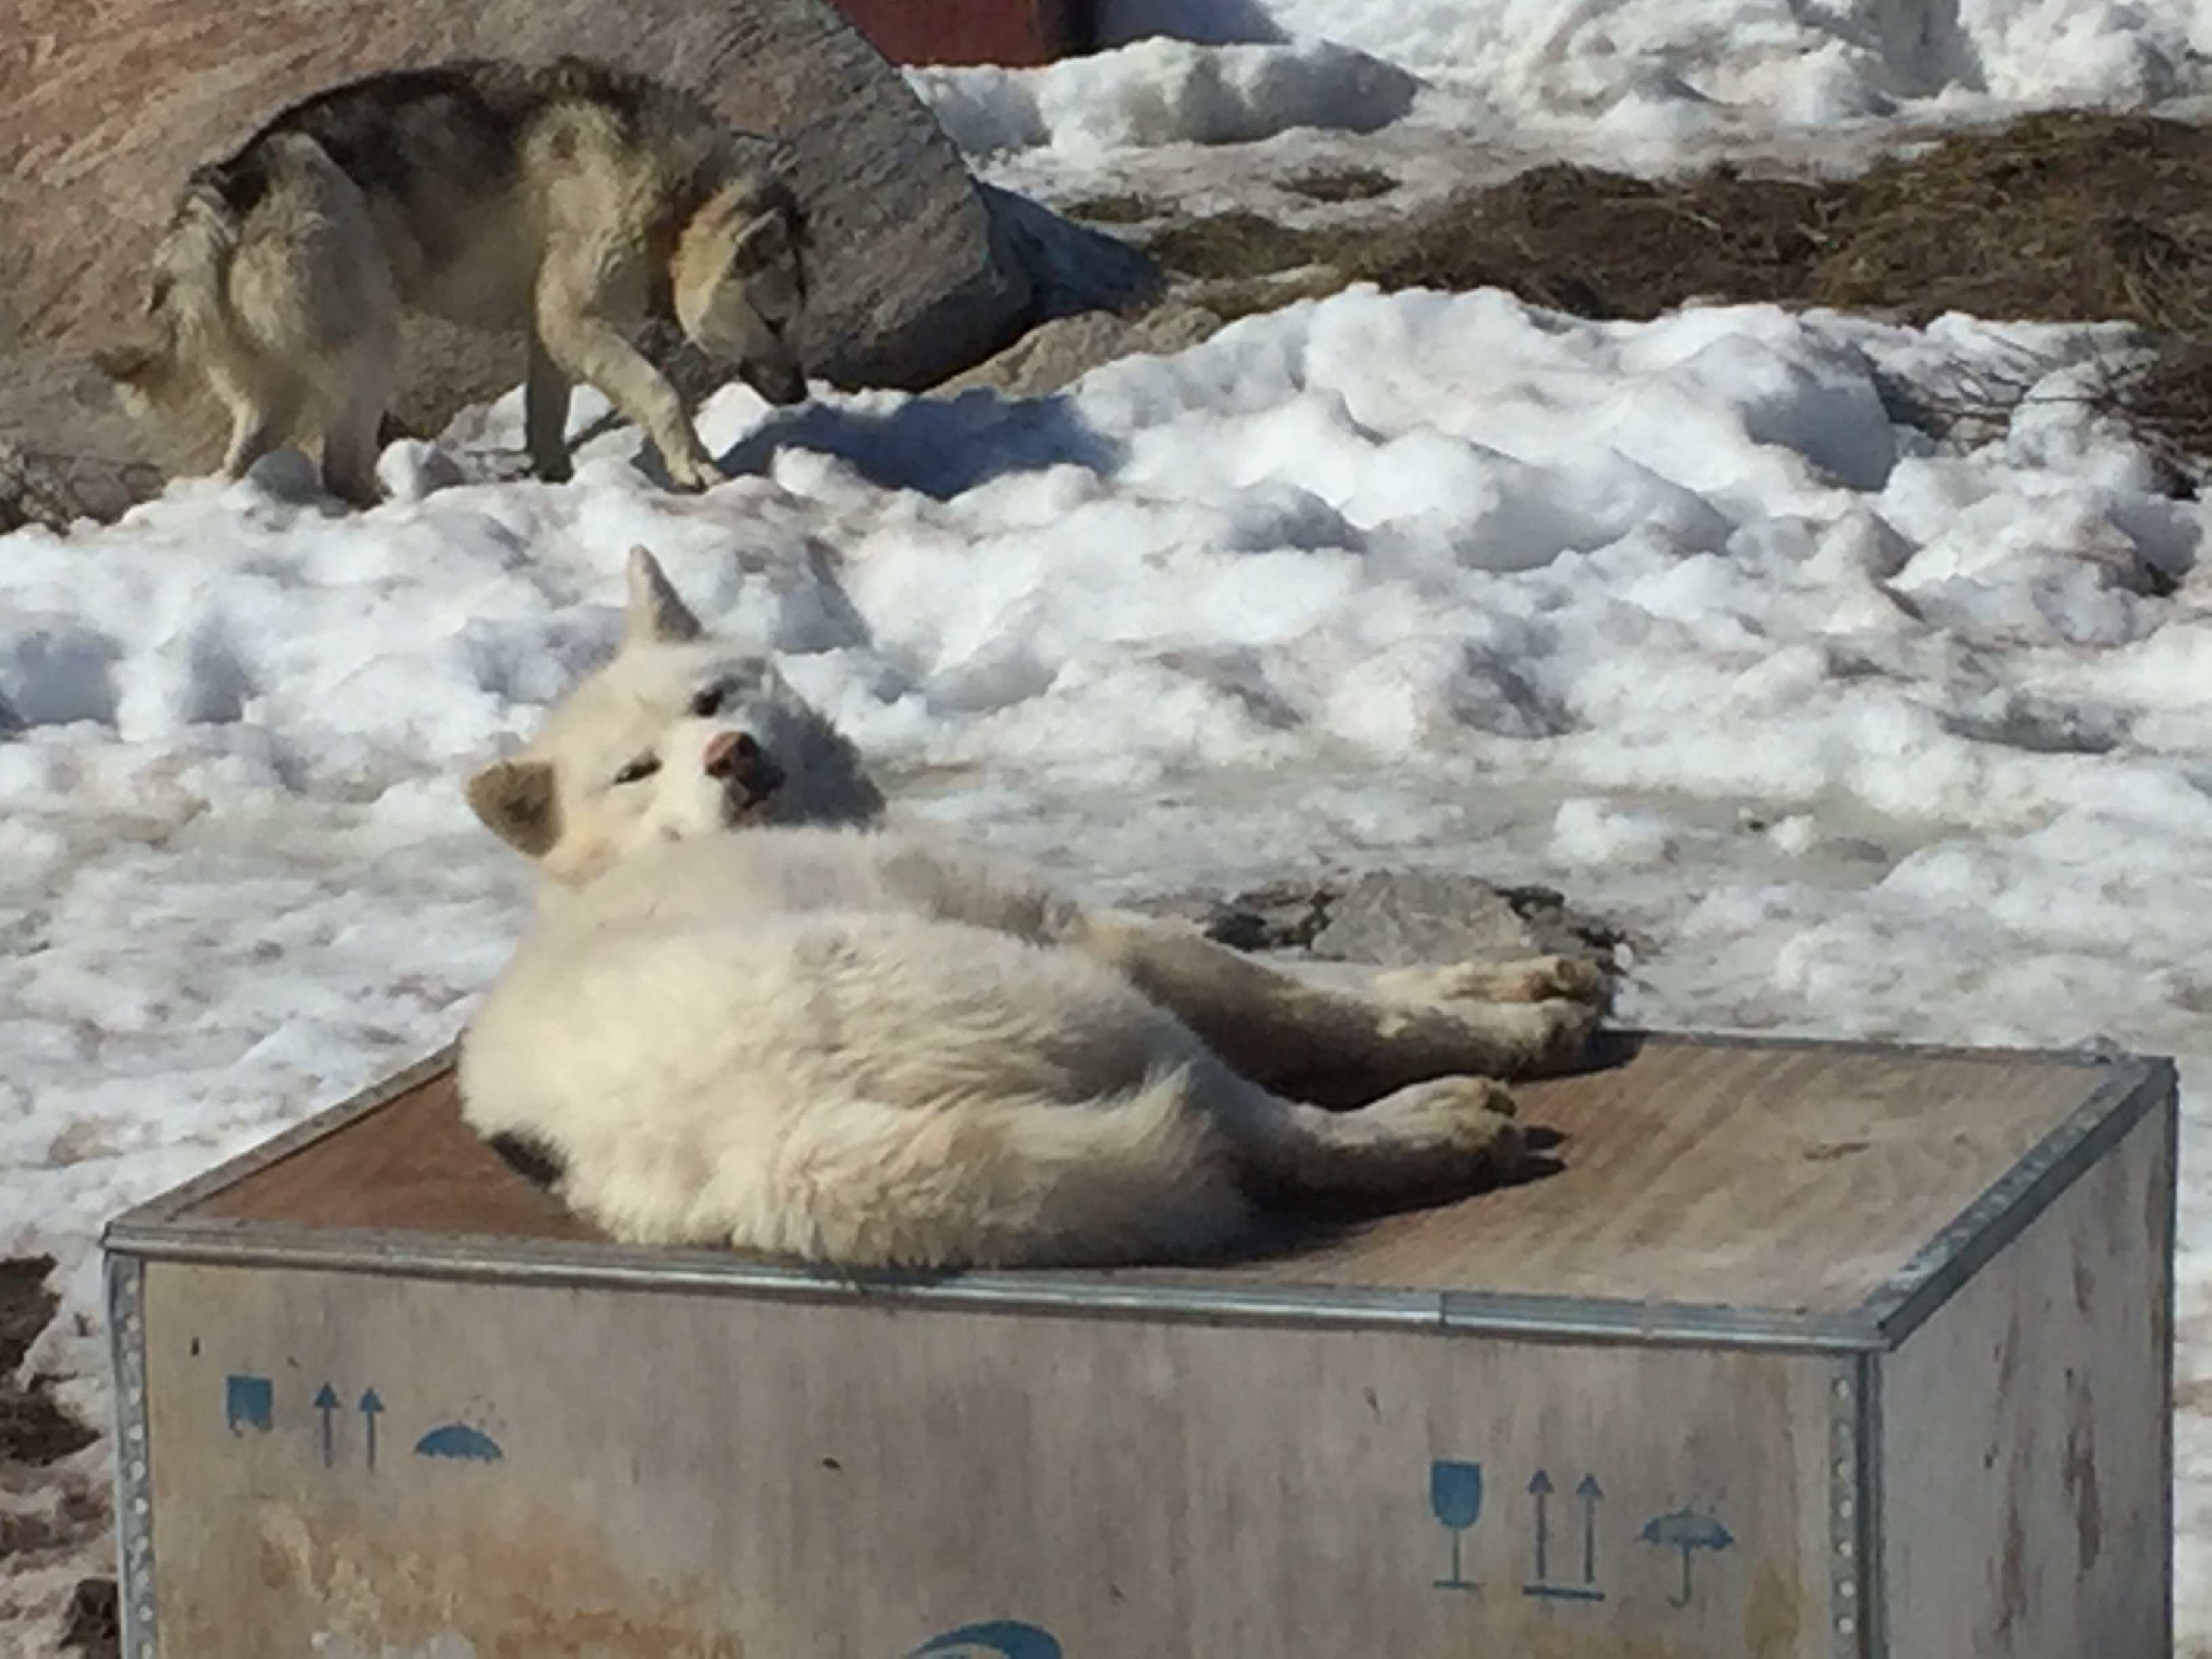 A huskie dog lies down on a wooden box